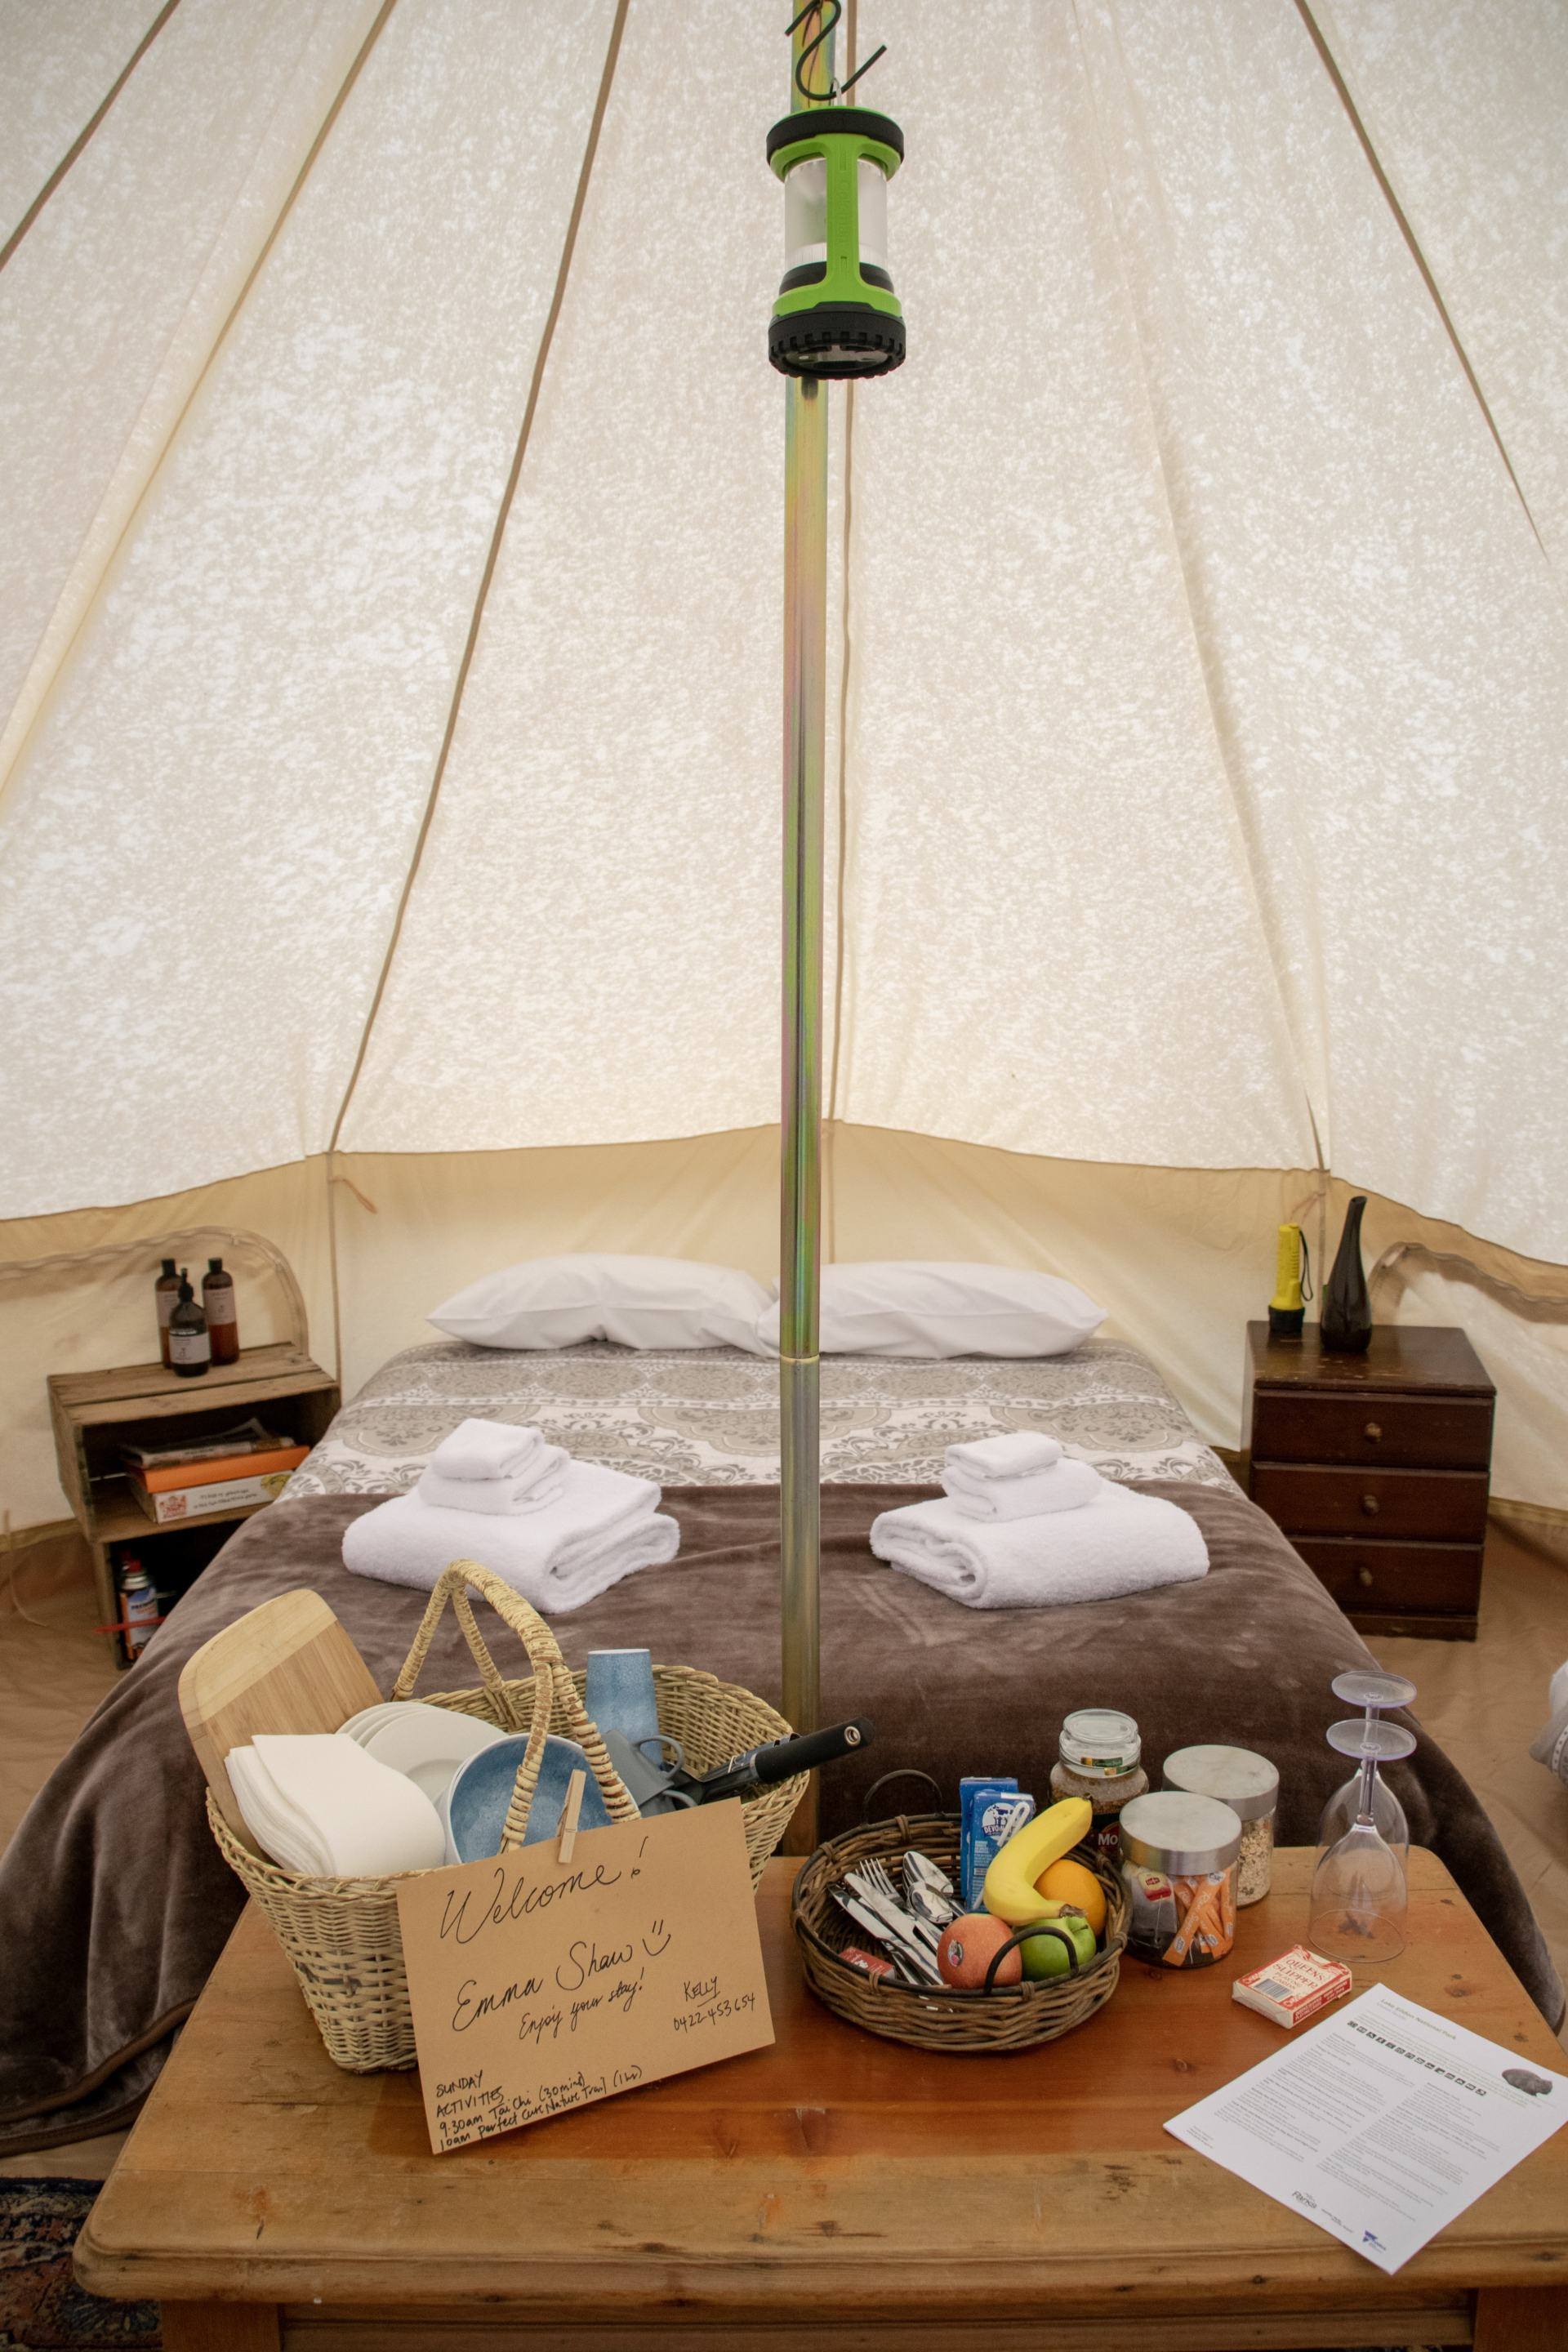 inside our glamping tent